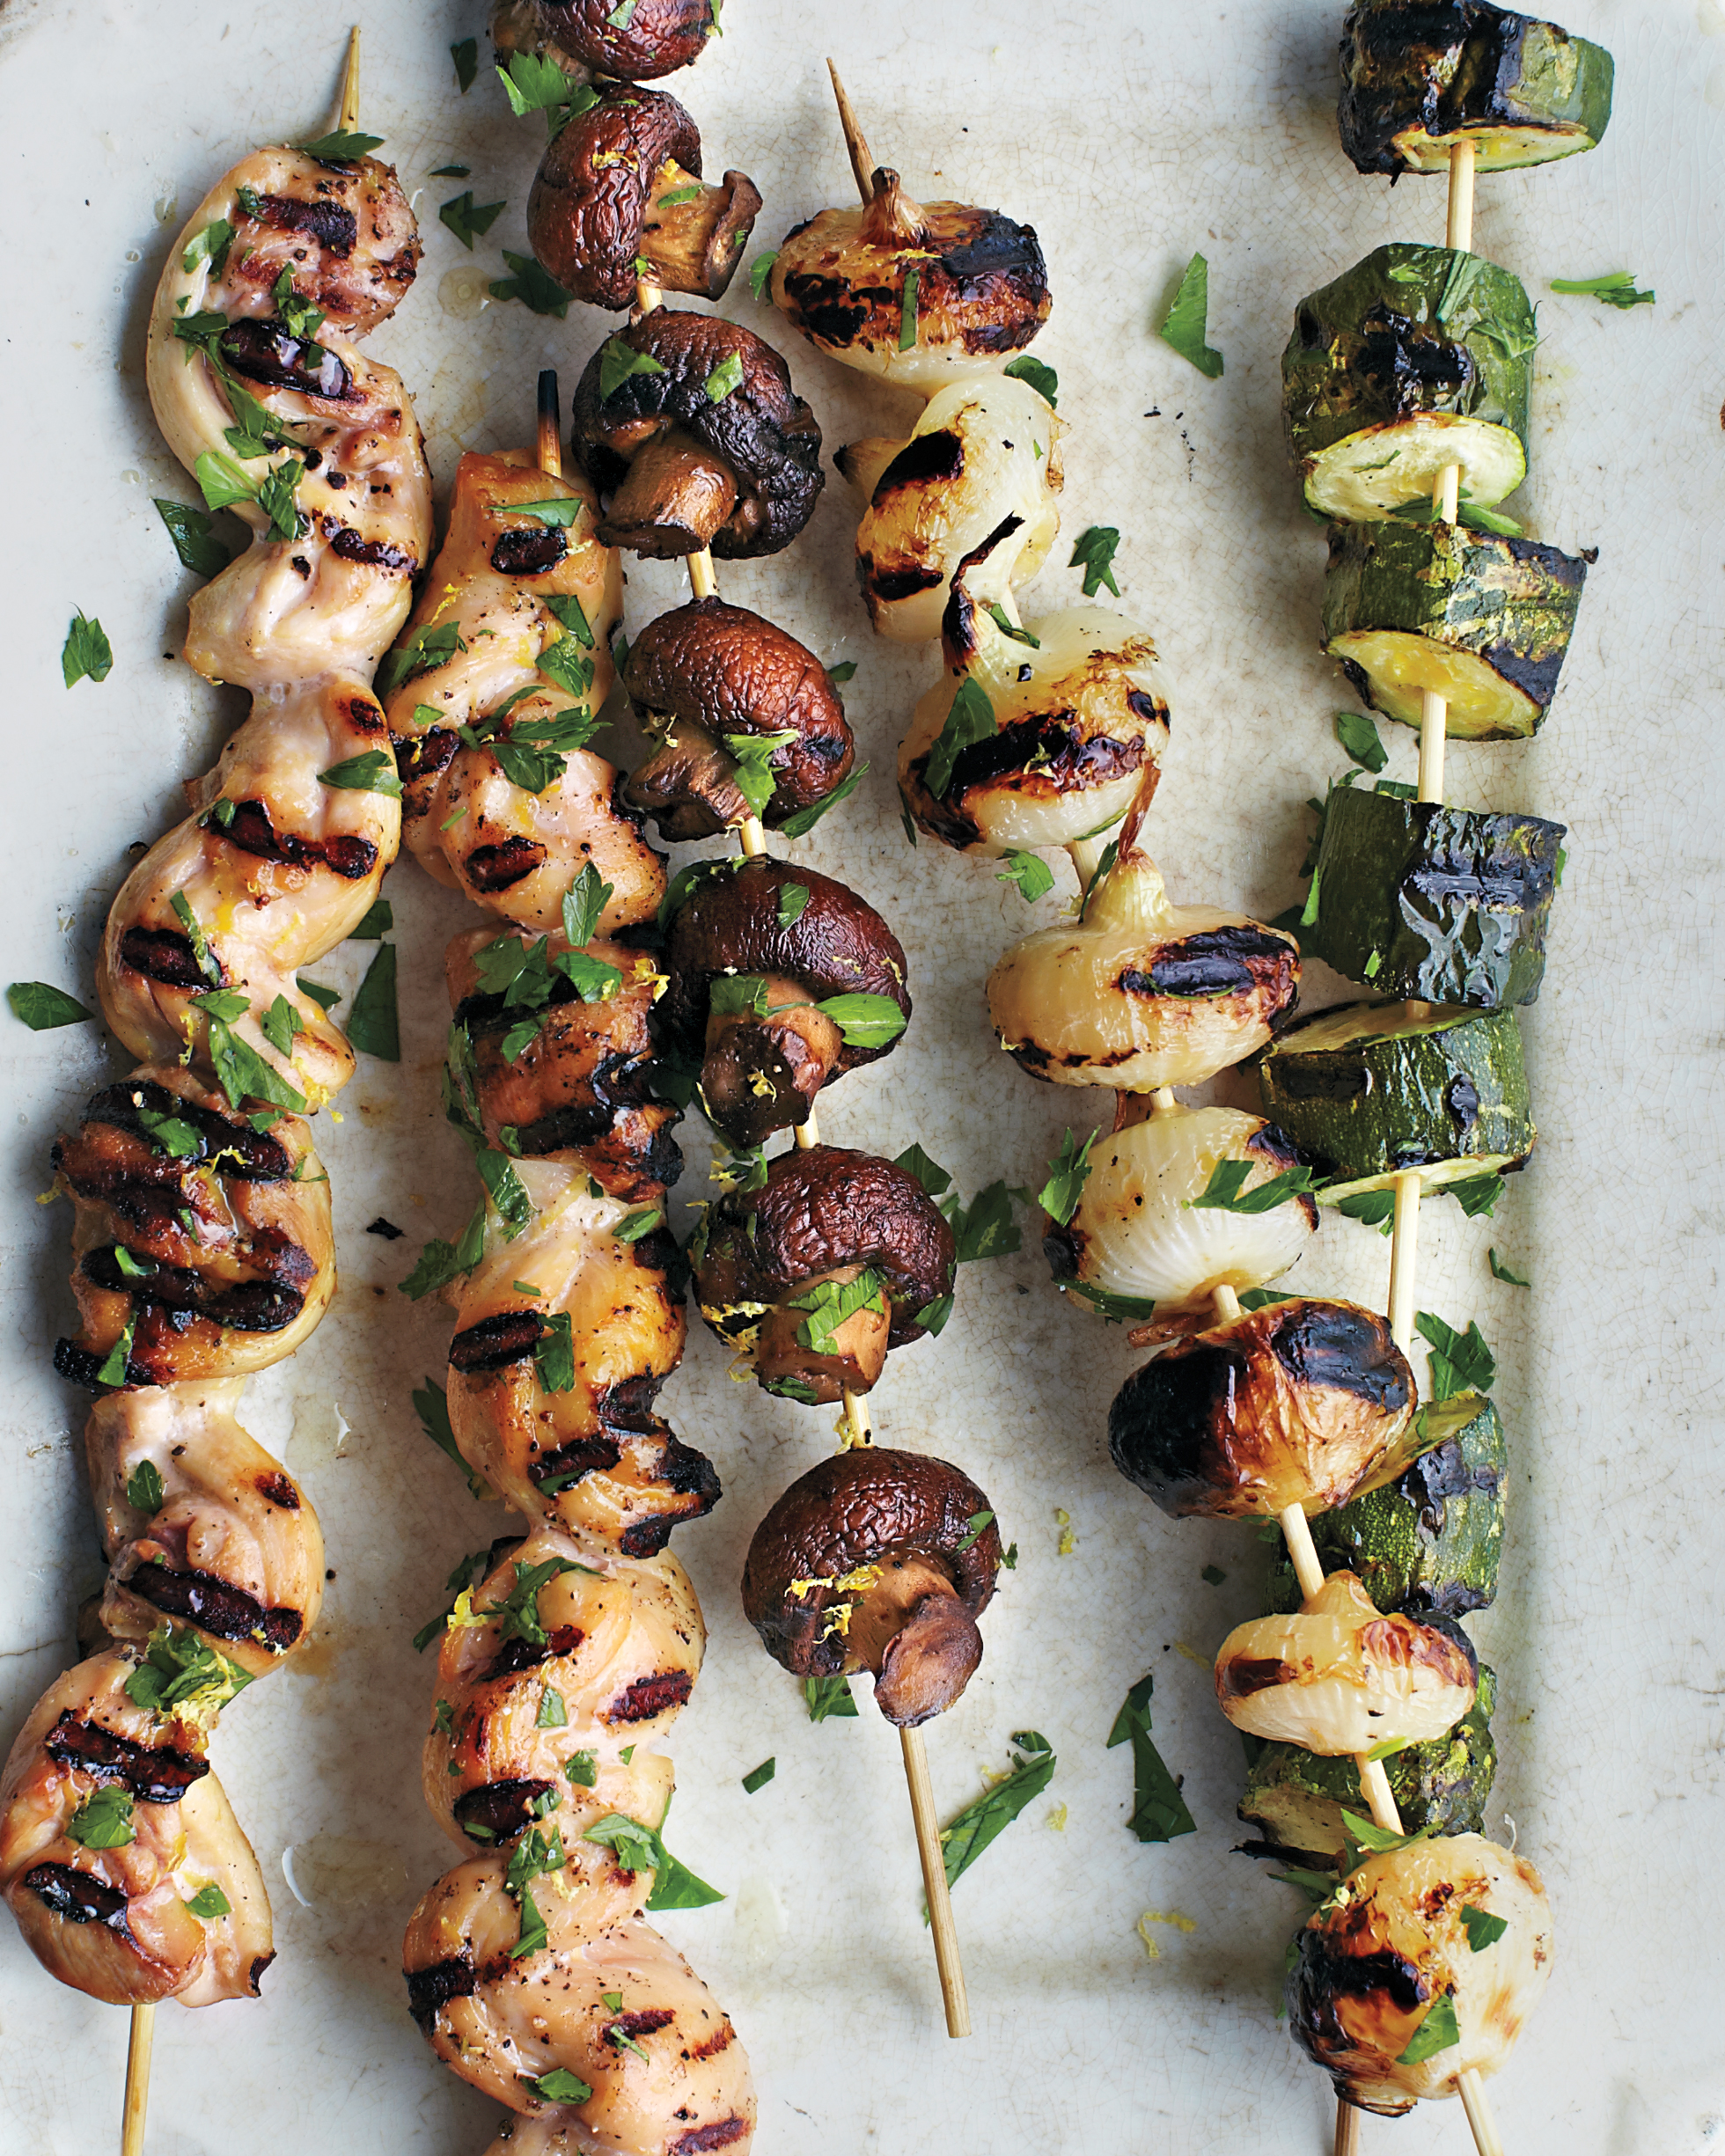 Clipartsteak kabobs mushroom zucchini pepper onion clipart graphic royalty free download The Best Kebab Recipes: Our Favorite Grilled Foods on a Stick ... graphic royalty free download